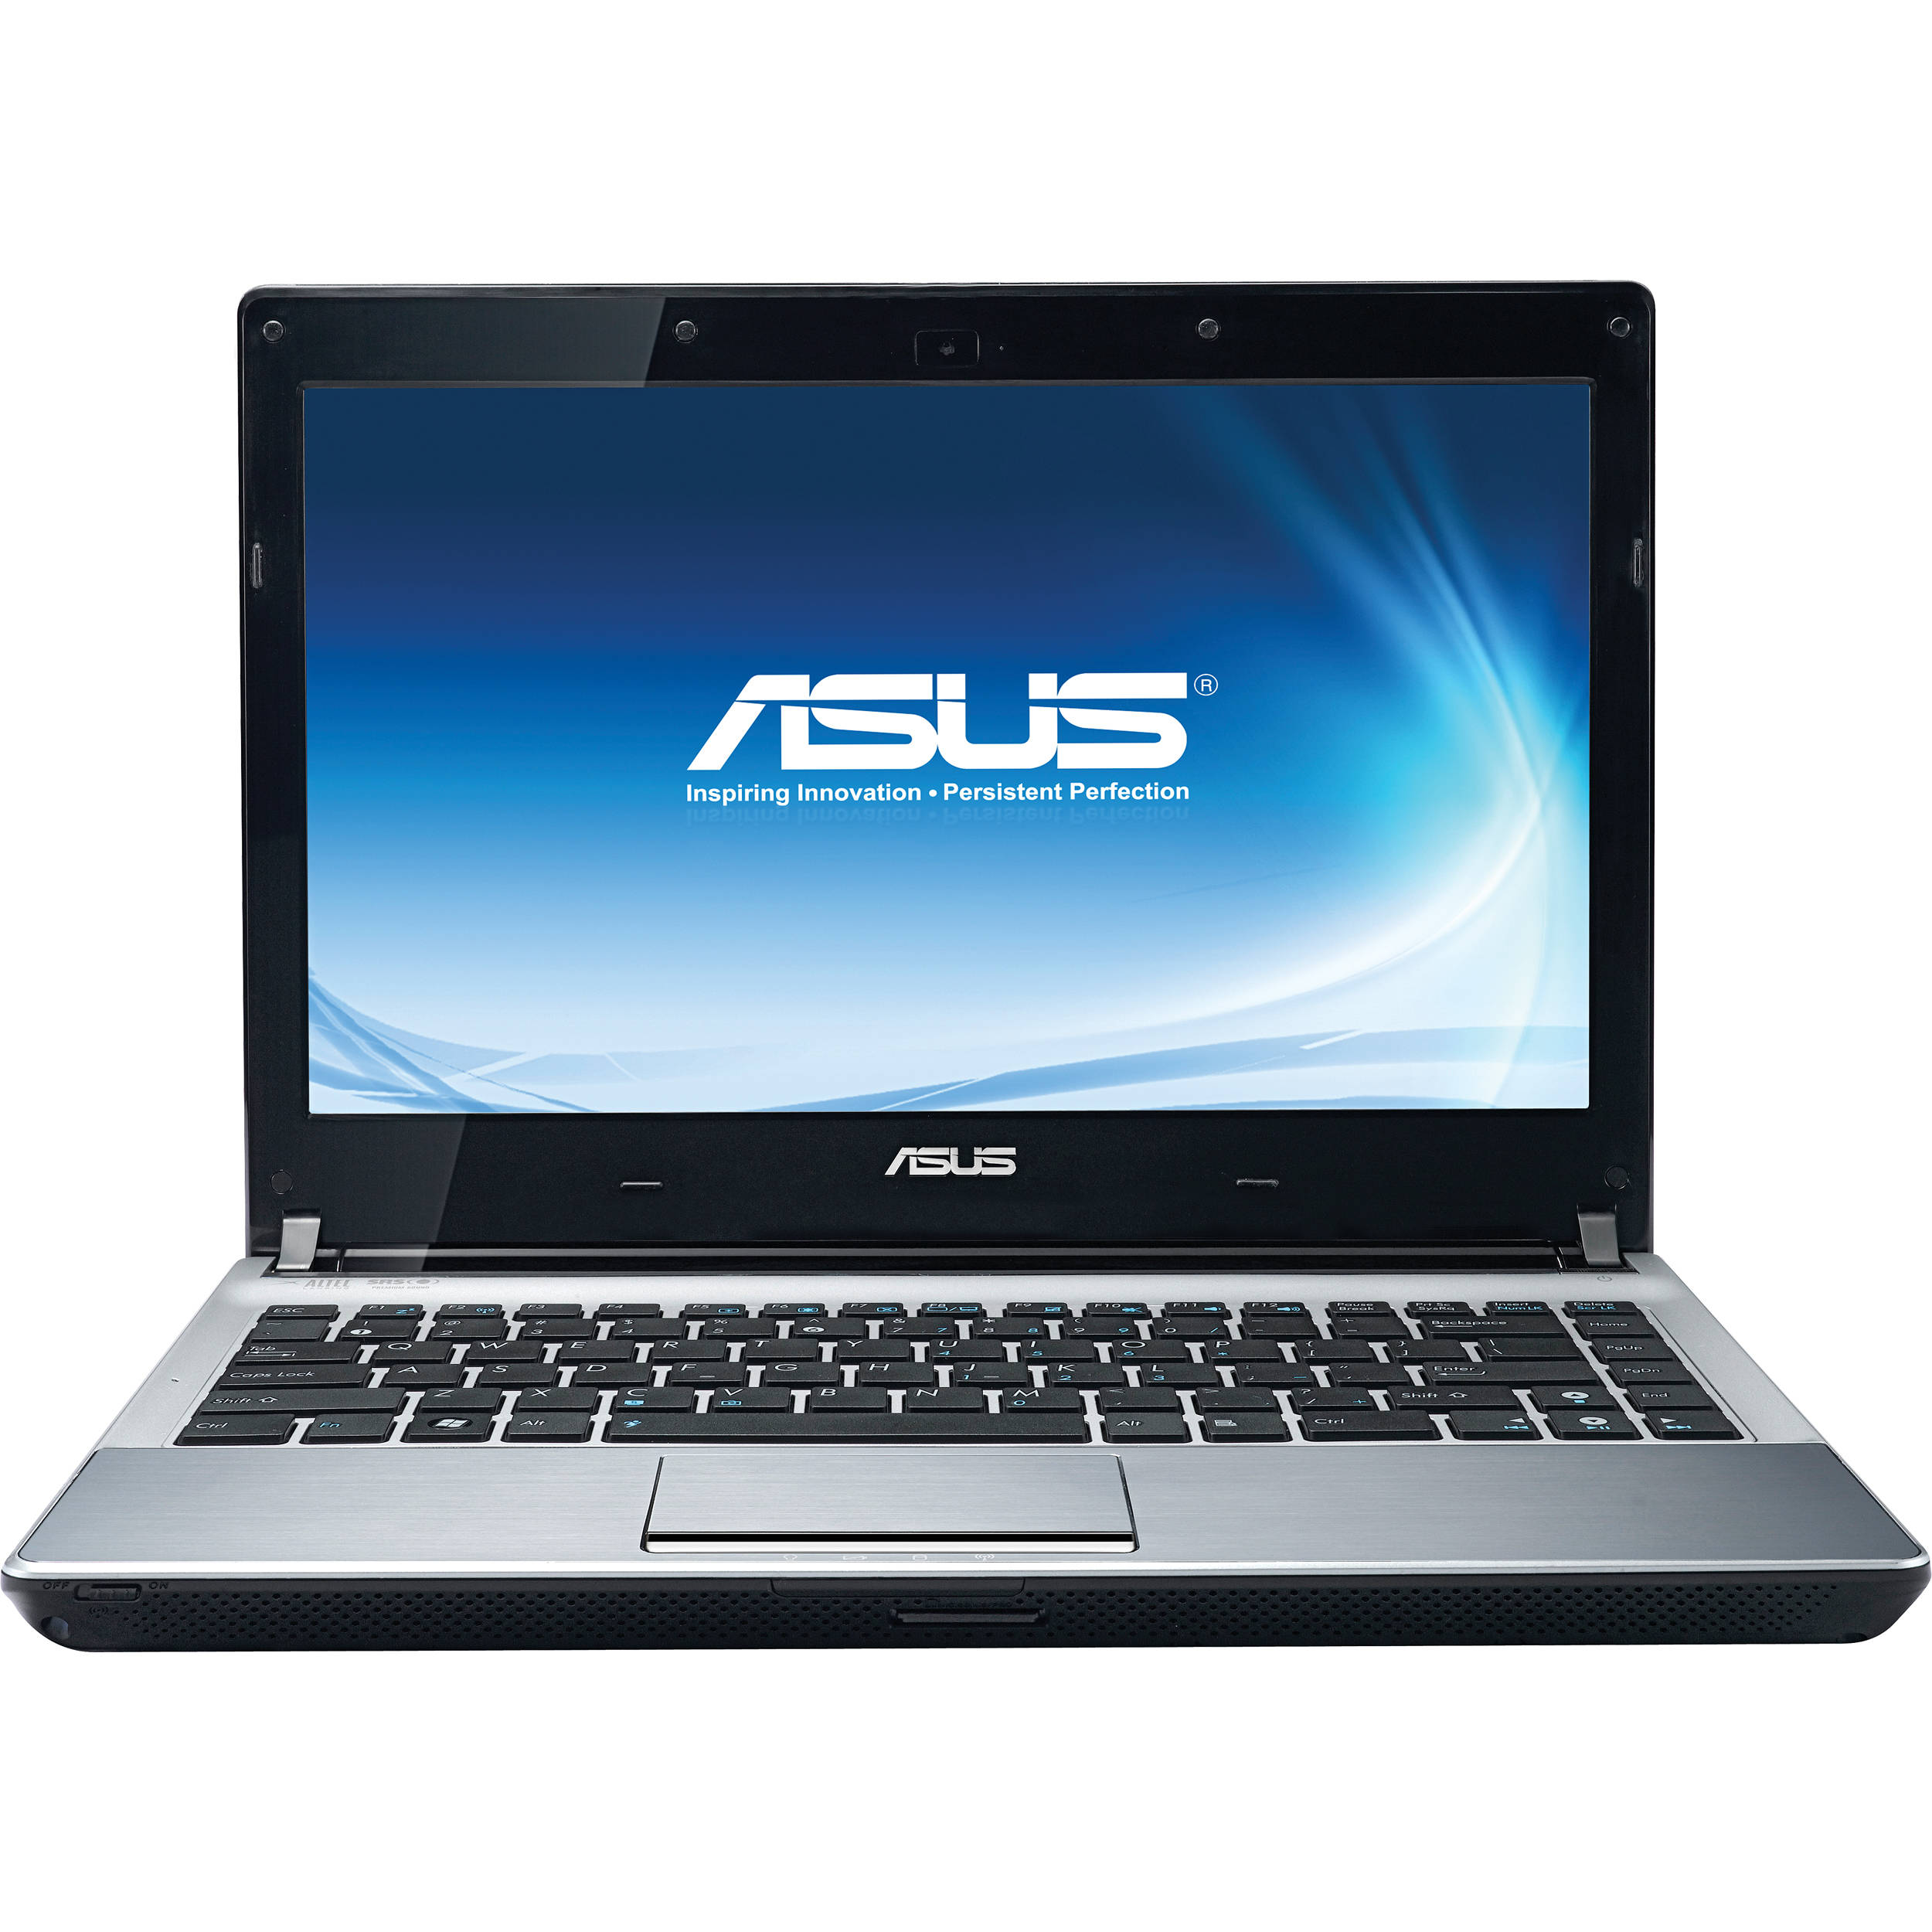 Asus U30JC-B2B Driver Download